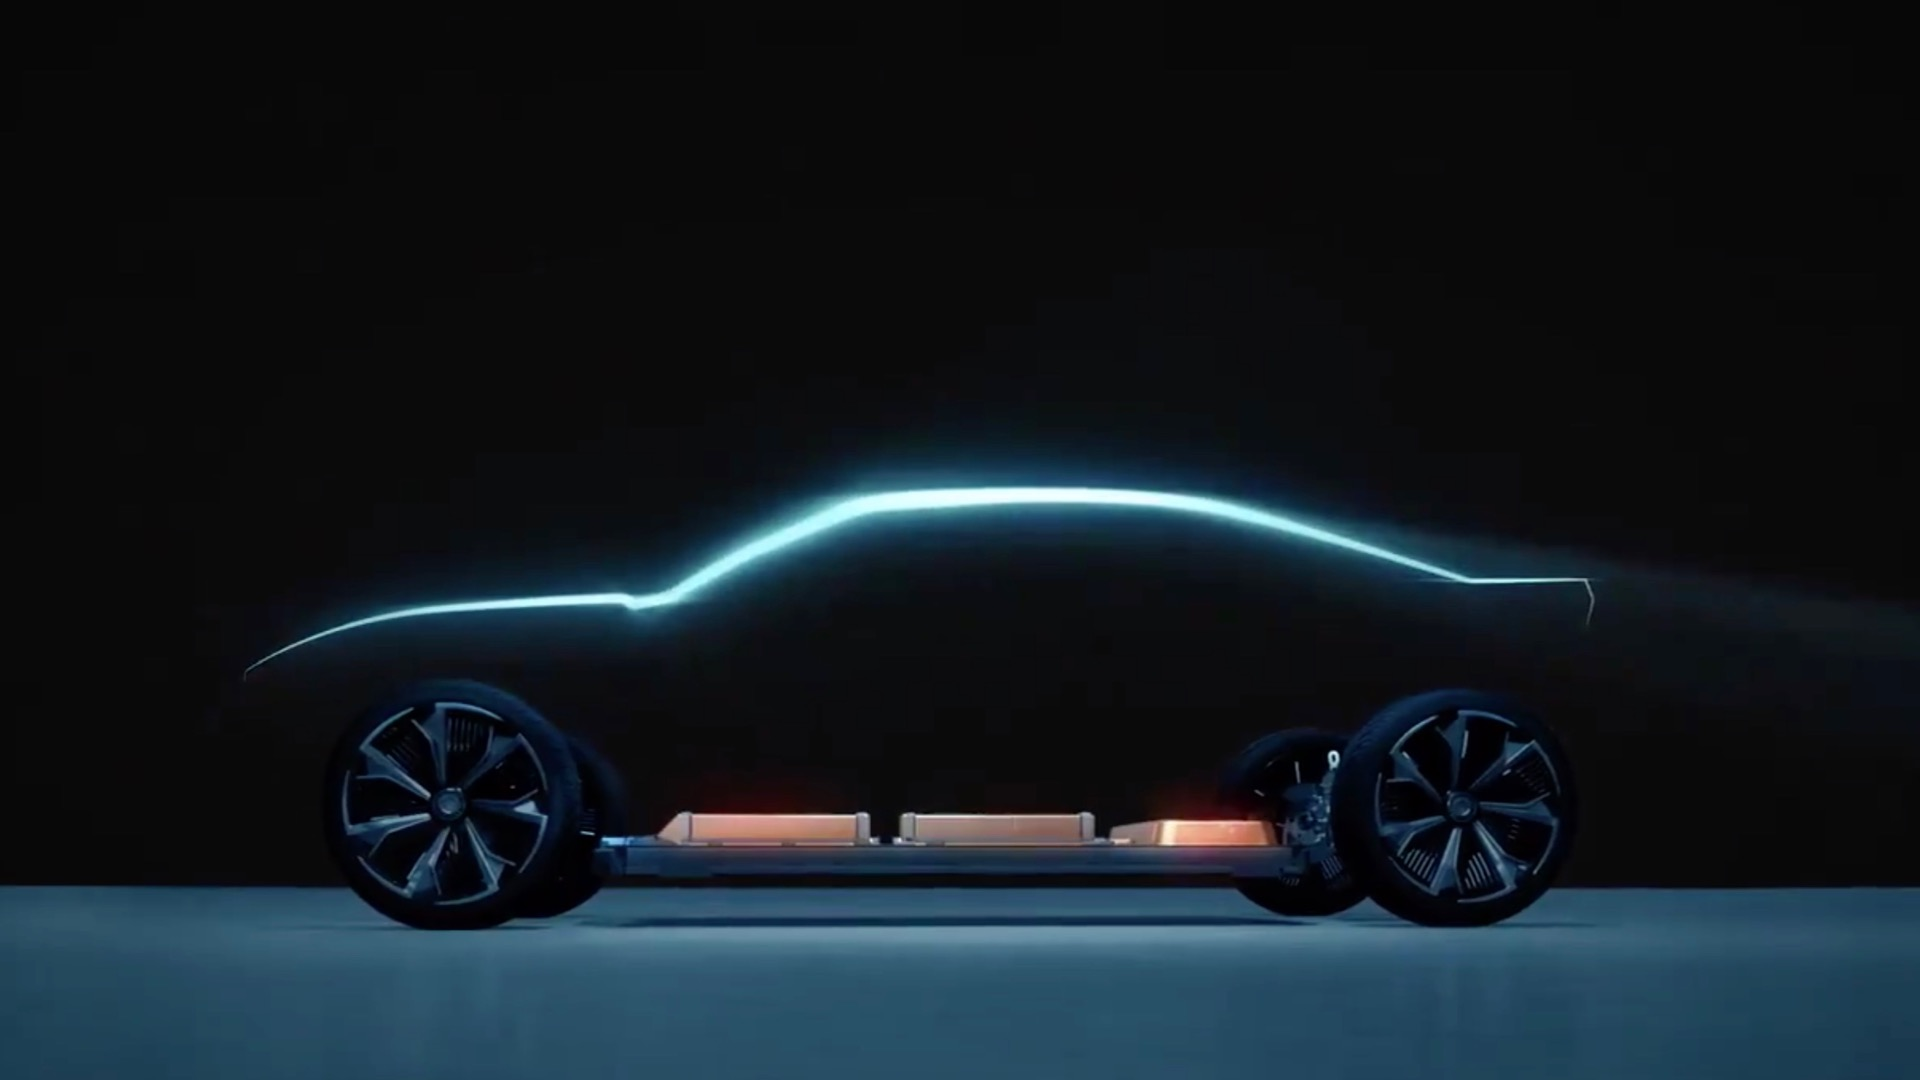 Clarity Electric Gone Goodyear Regenerating Tire Chevy Bolt Euv Electric Camaro Today S Car News